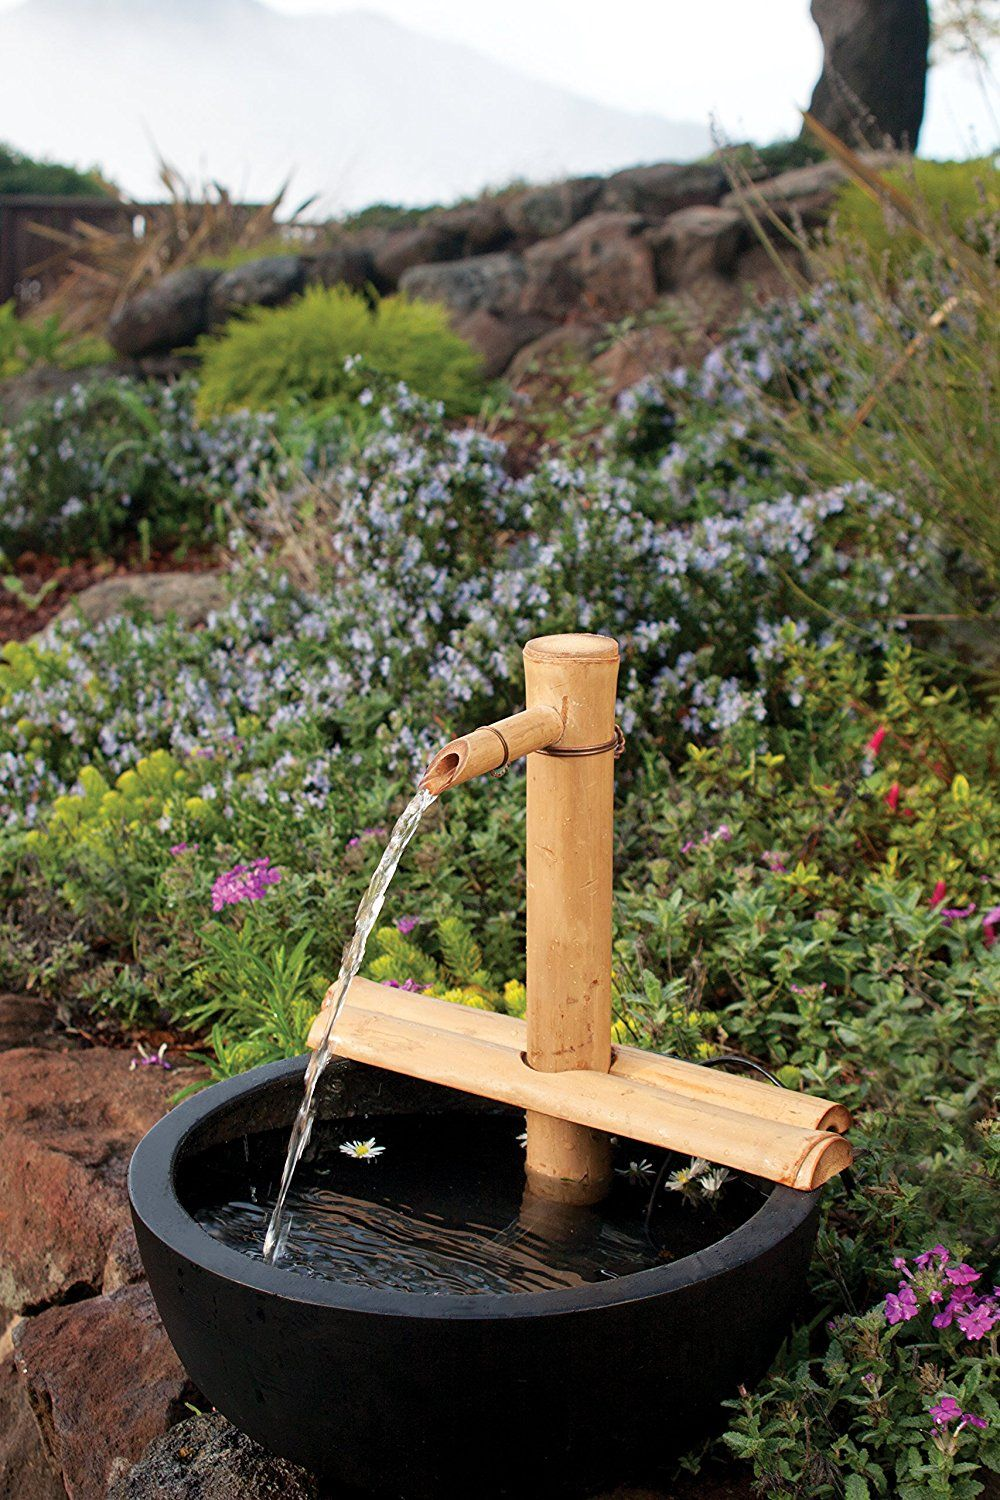 40 Amazon Com Bamboo Accents Water Fountain Kit 12 Inch Adjustable Medium Size Water Pump Included Bamboo Fountain Bamboo Water Fountain Water Fountain